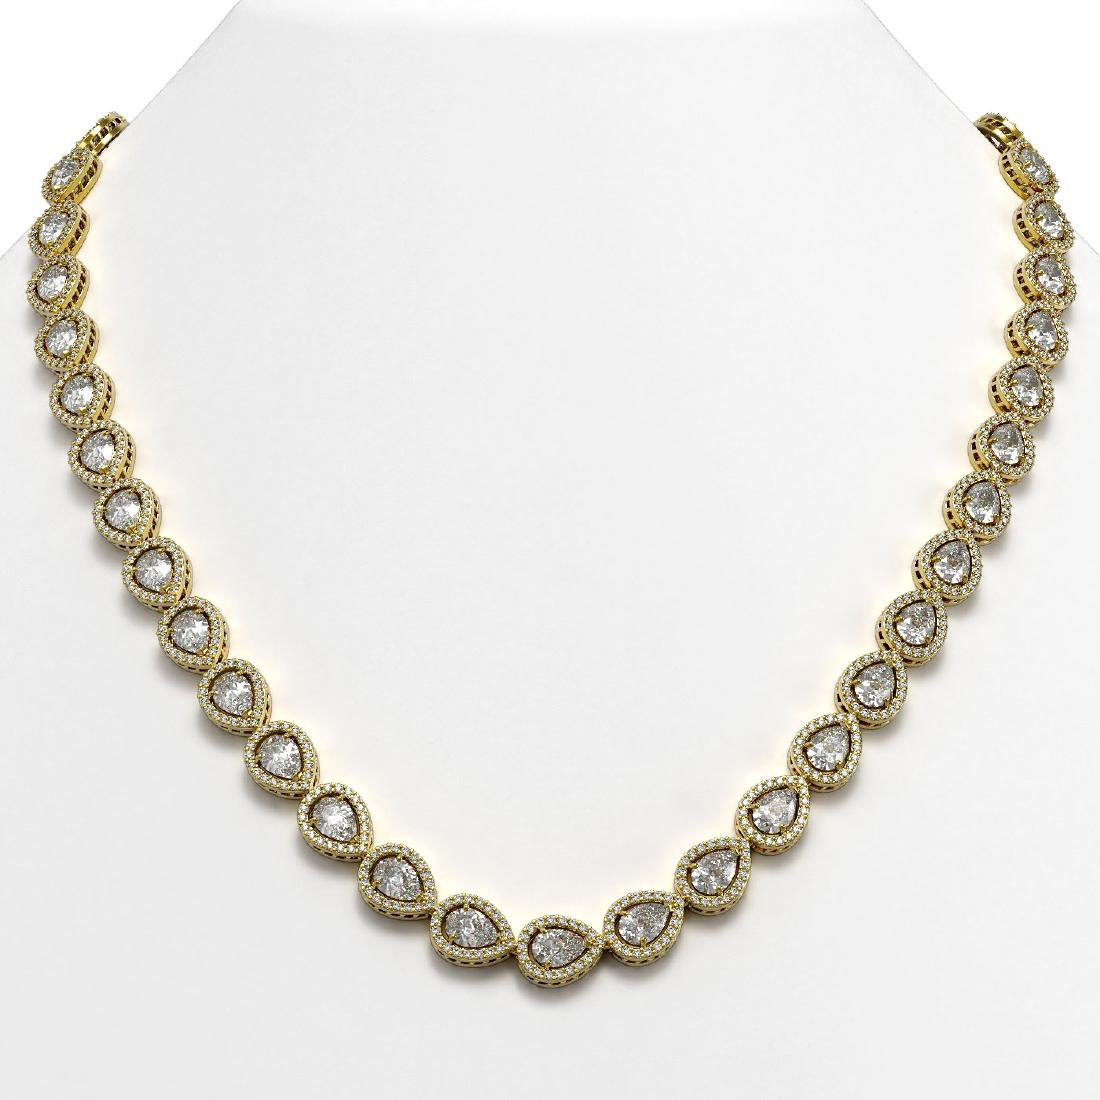 28.74 CTW Pear Diamond Designer Necklace 18K Yellow